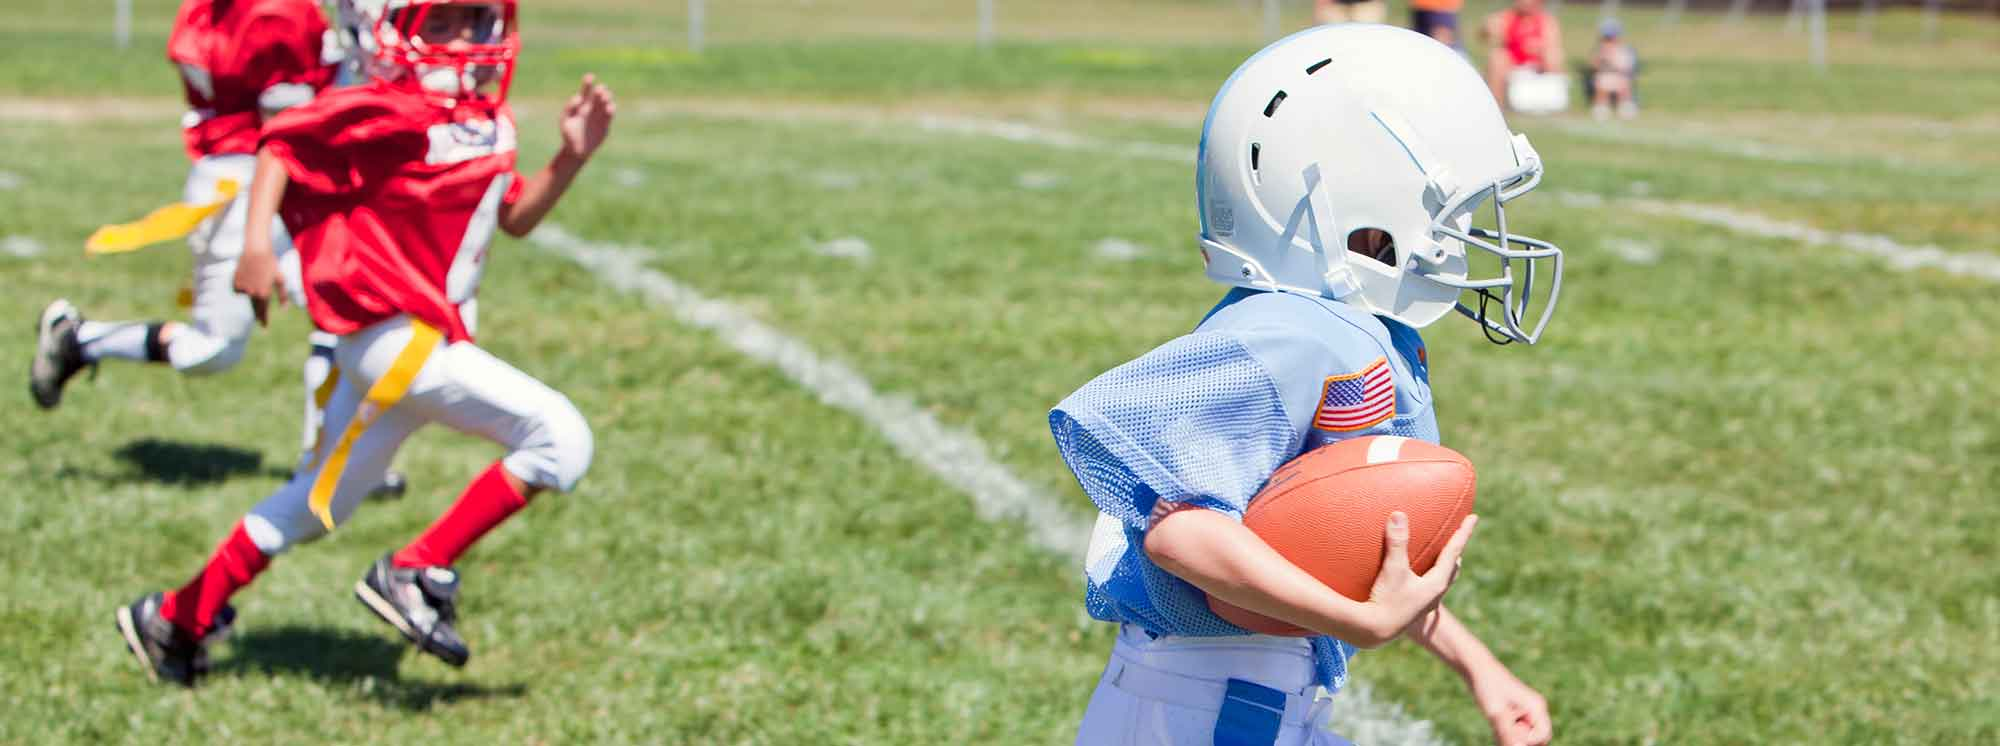 Best Football Camps in the USA